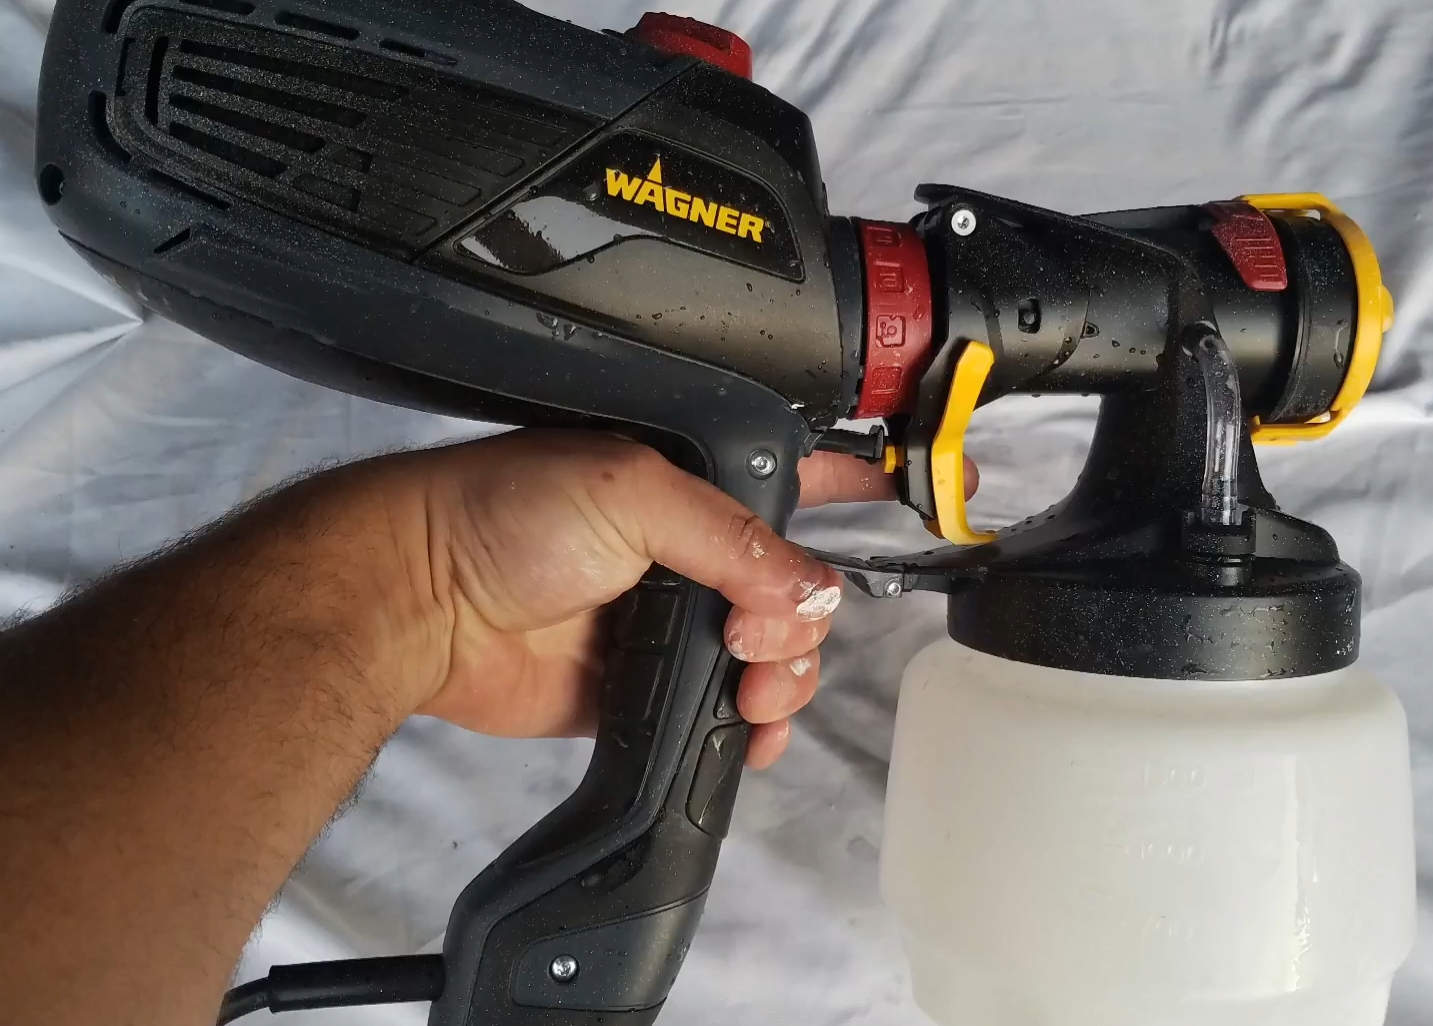 Tool review zone wagner flexio 2000 hplv spray gun review for Hplv paint sprayer